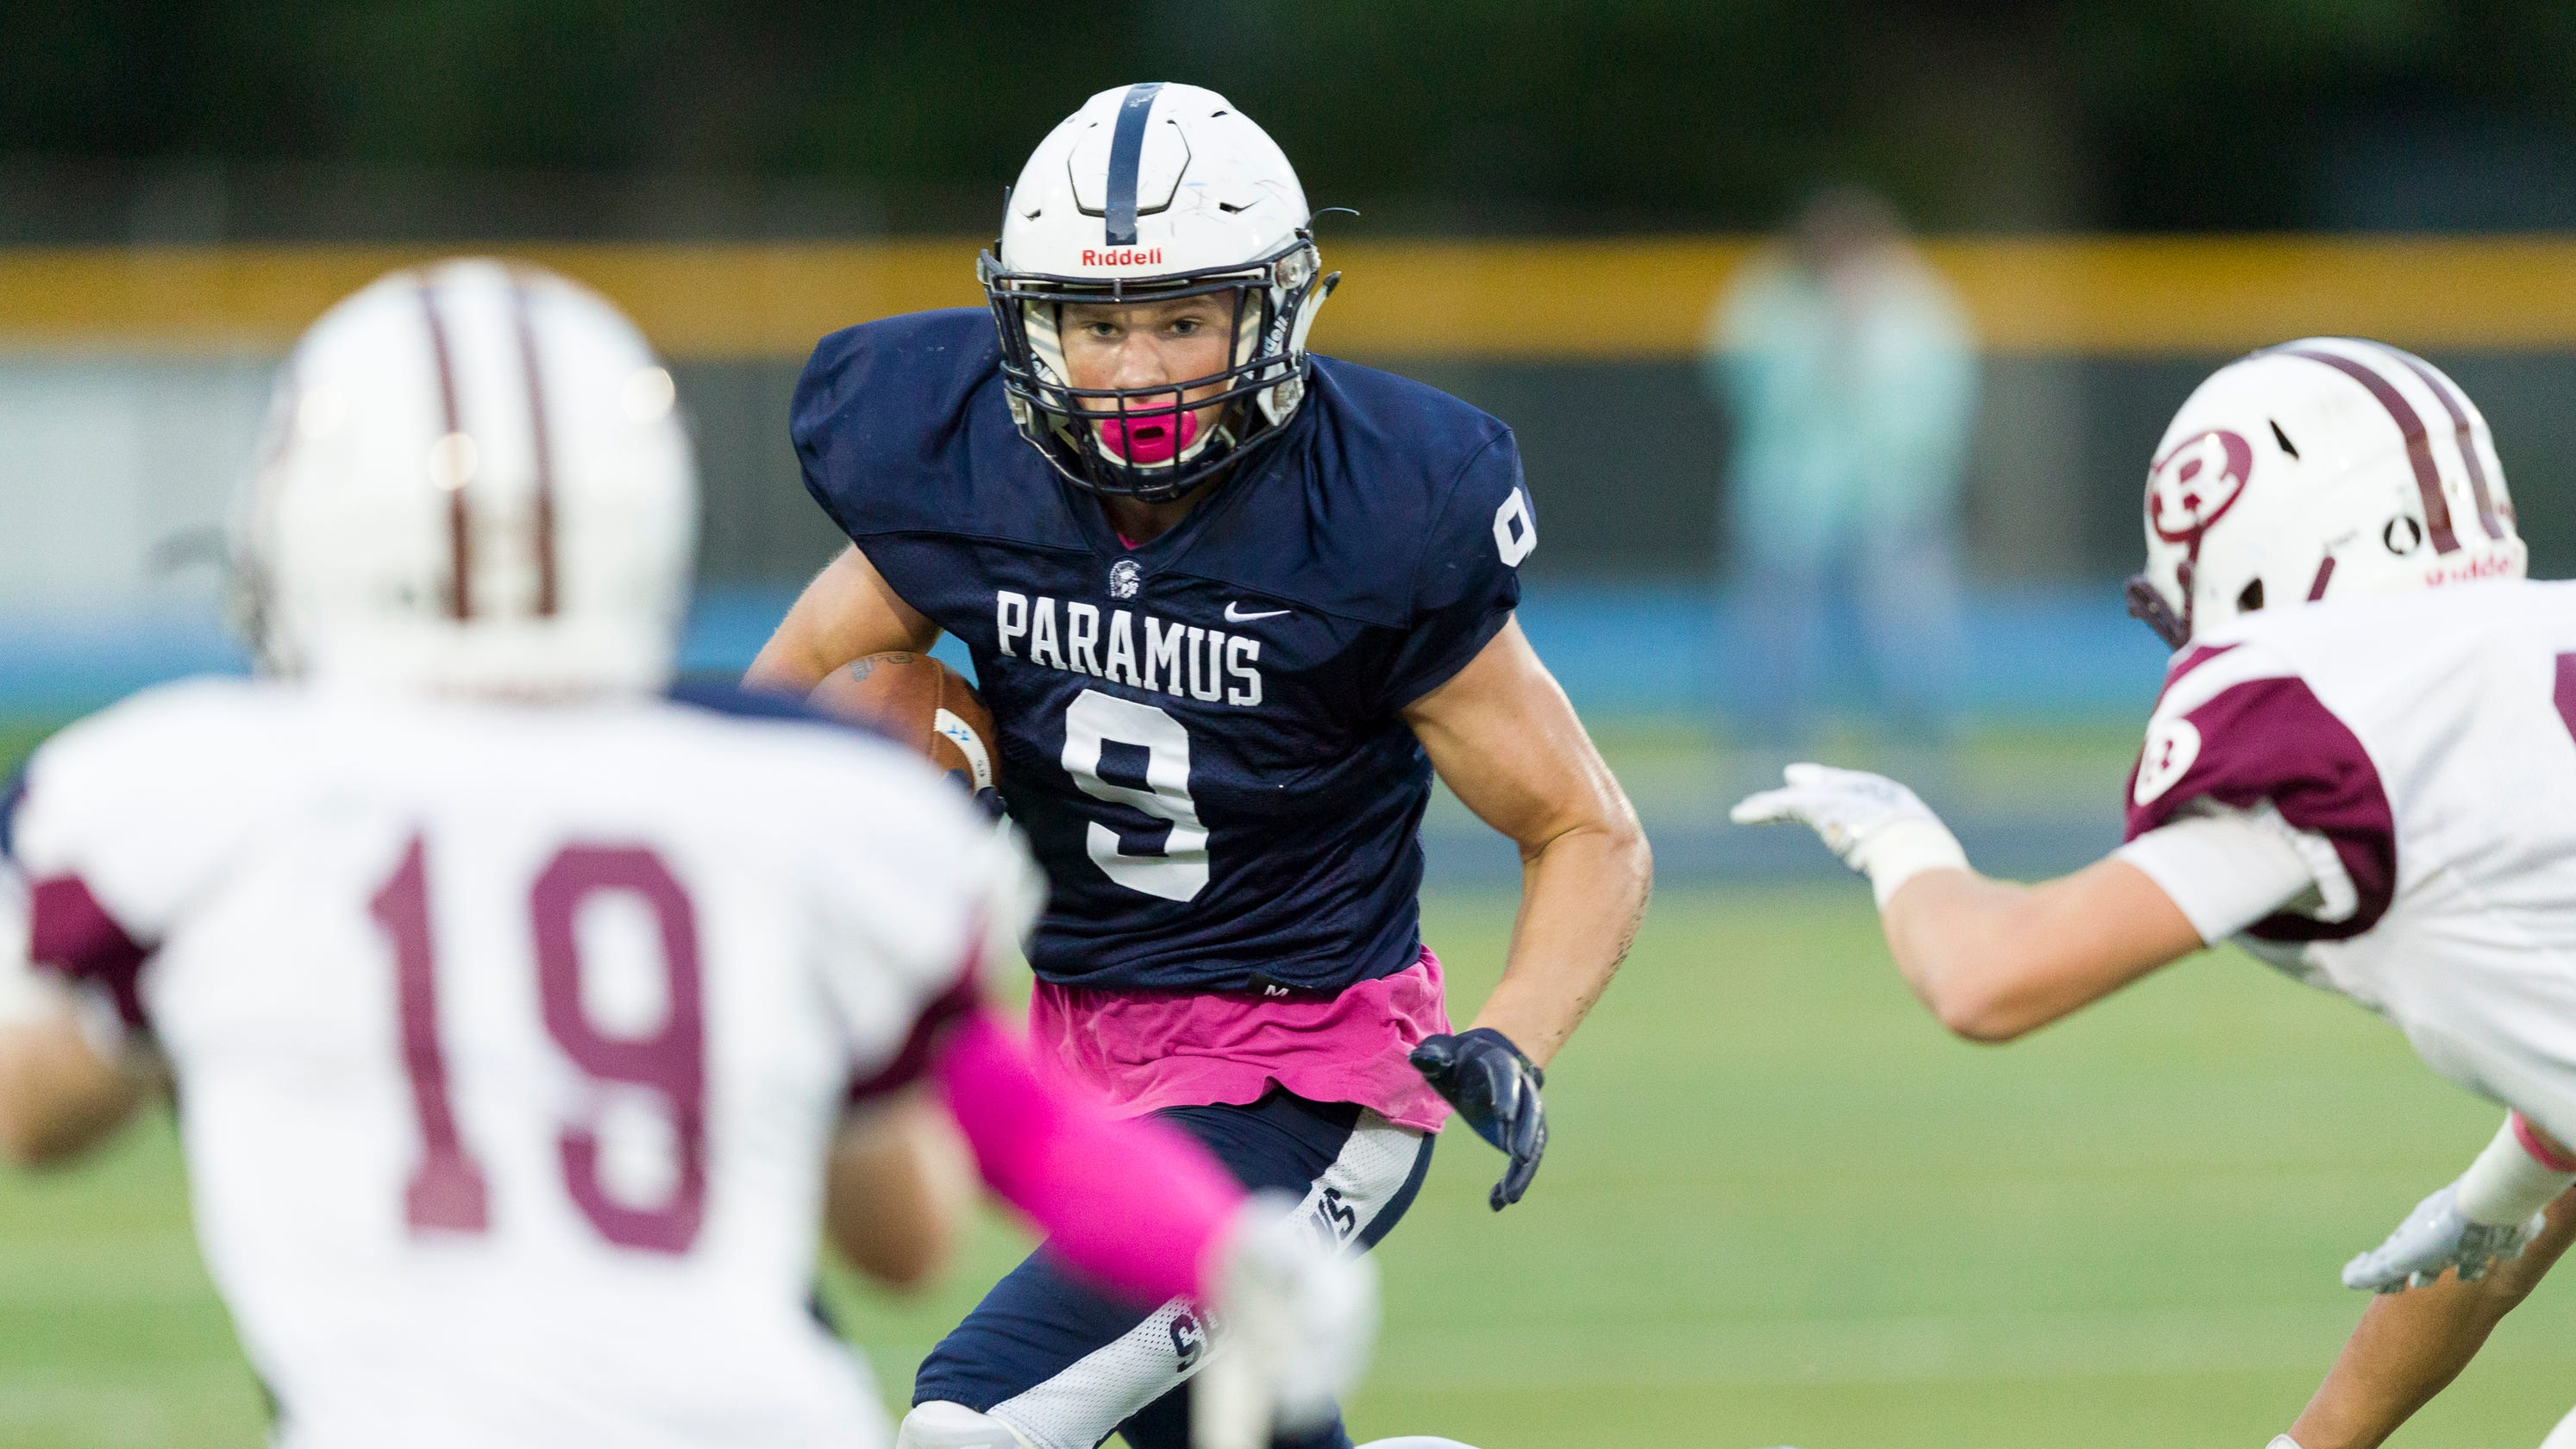 NJ football  North Jersey Public School Top 20 rankings after Week 5 618cce69e